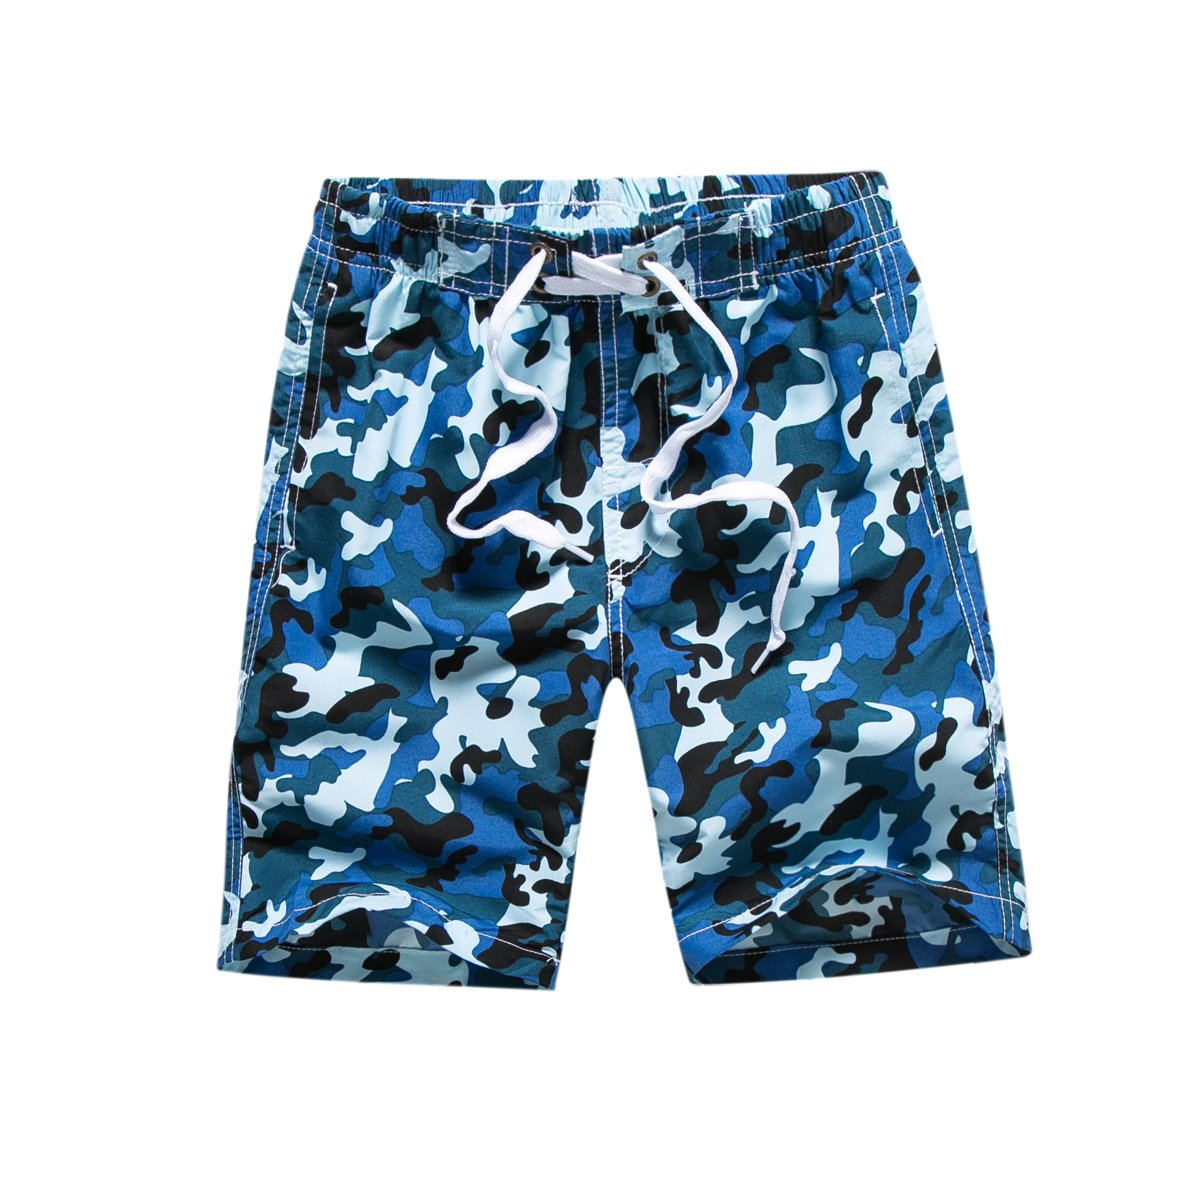 9859667ade Soft Fabric - This big boy\'s swim trunk is made of 100% durably  comfortable polyester that kids love. Easy Care - Our boy\'s board shorts  is quick dry and ...